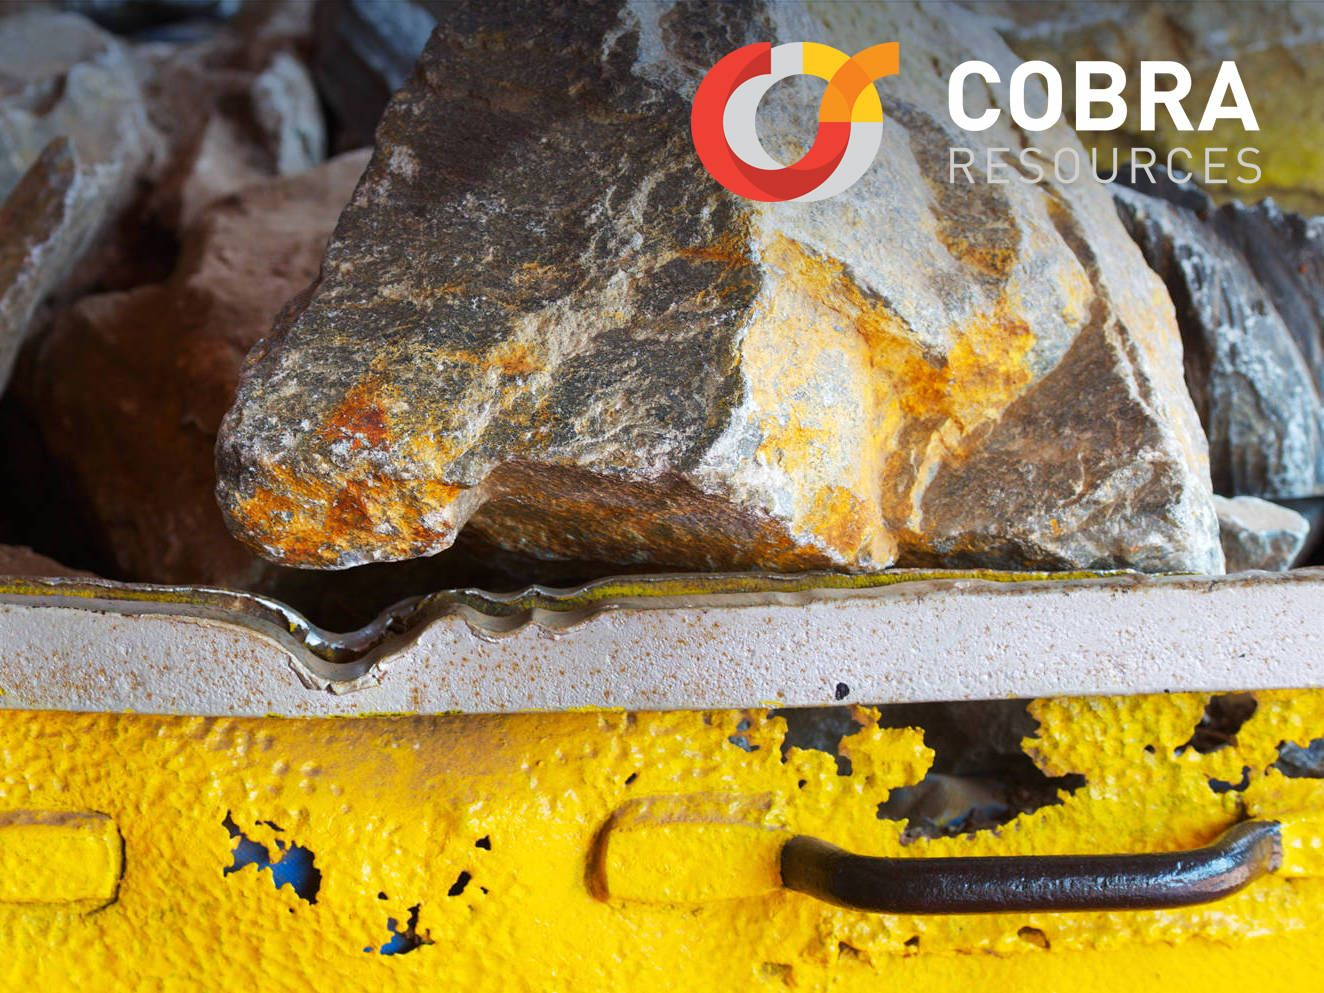 'The opportunity value is huge' – Cobra Resources' Craig Moulton on his plans to create value as firm prepares development of maiden assets (COBR)